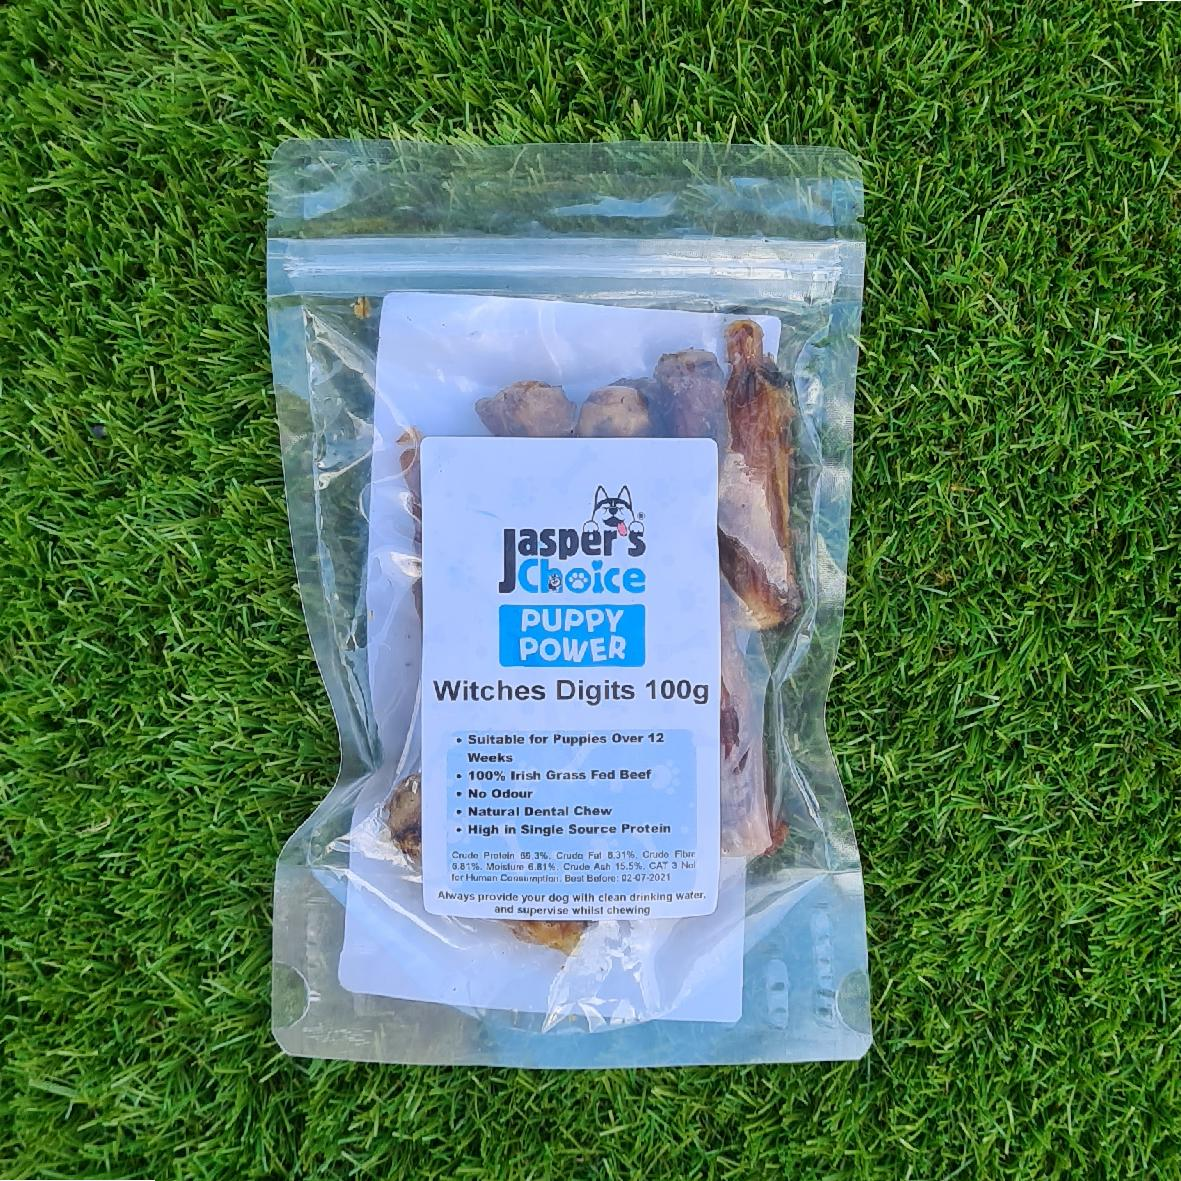 Jaspers Choice PUPPY POWER Witches Digits 100gm